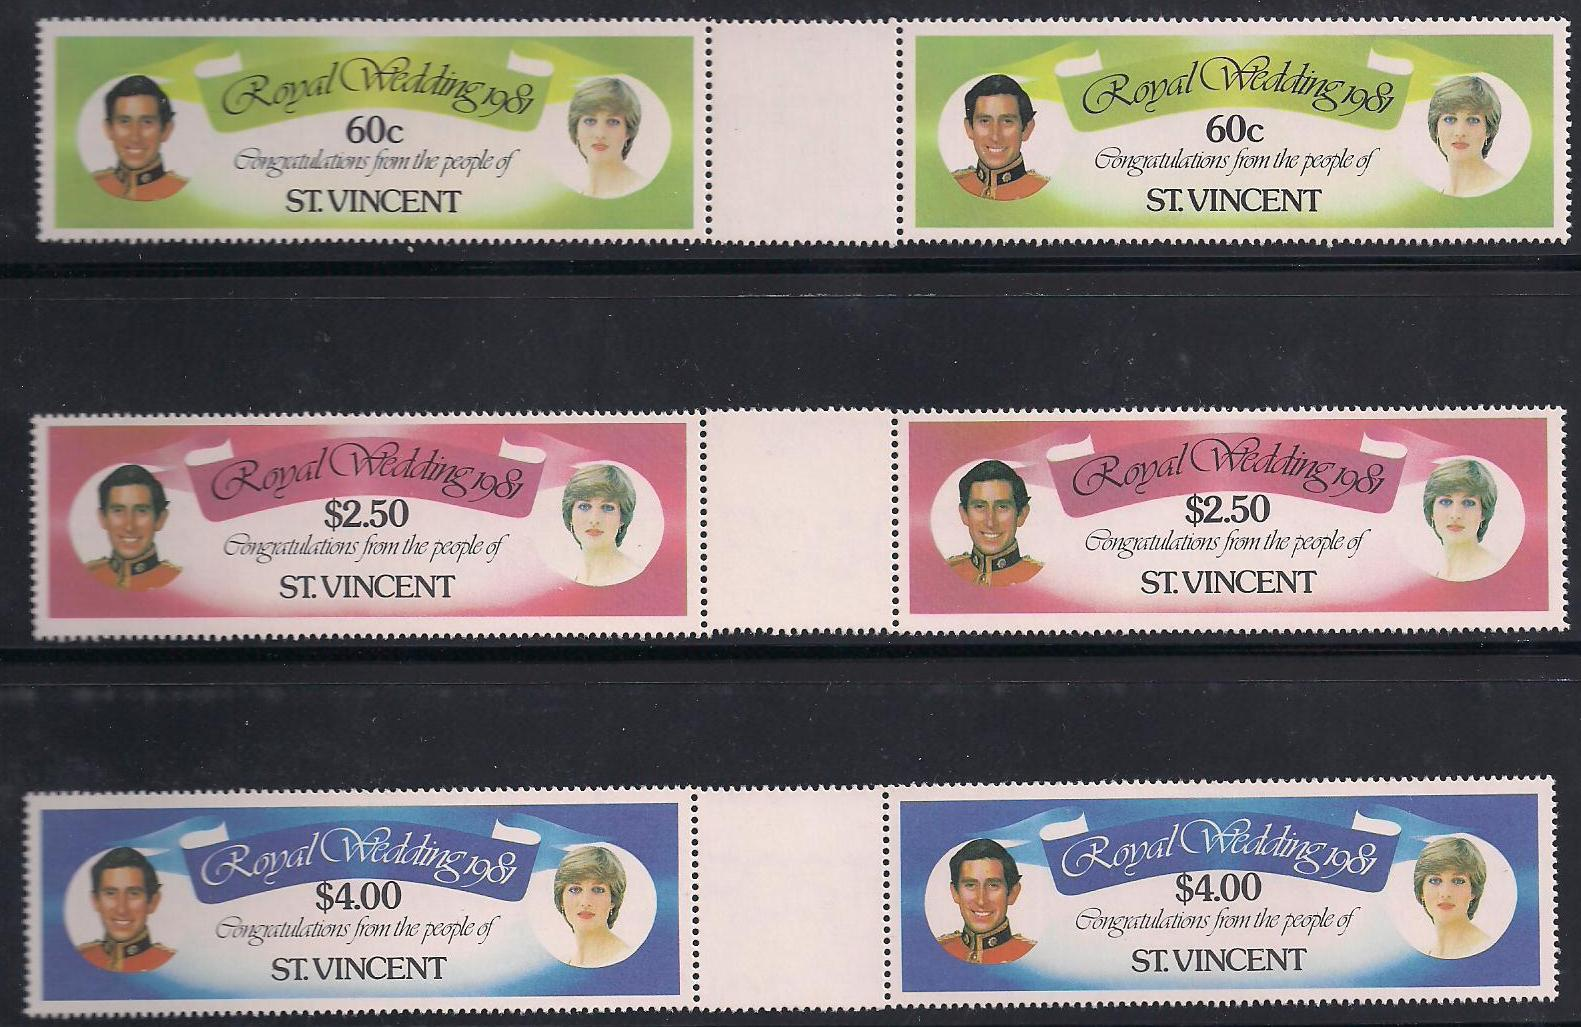 1981 St Vincent - Charles & Di Wedding Gutter Pr Set (6) MNH